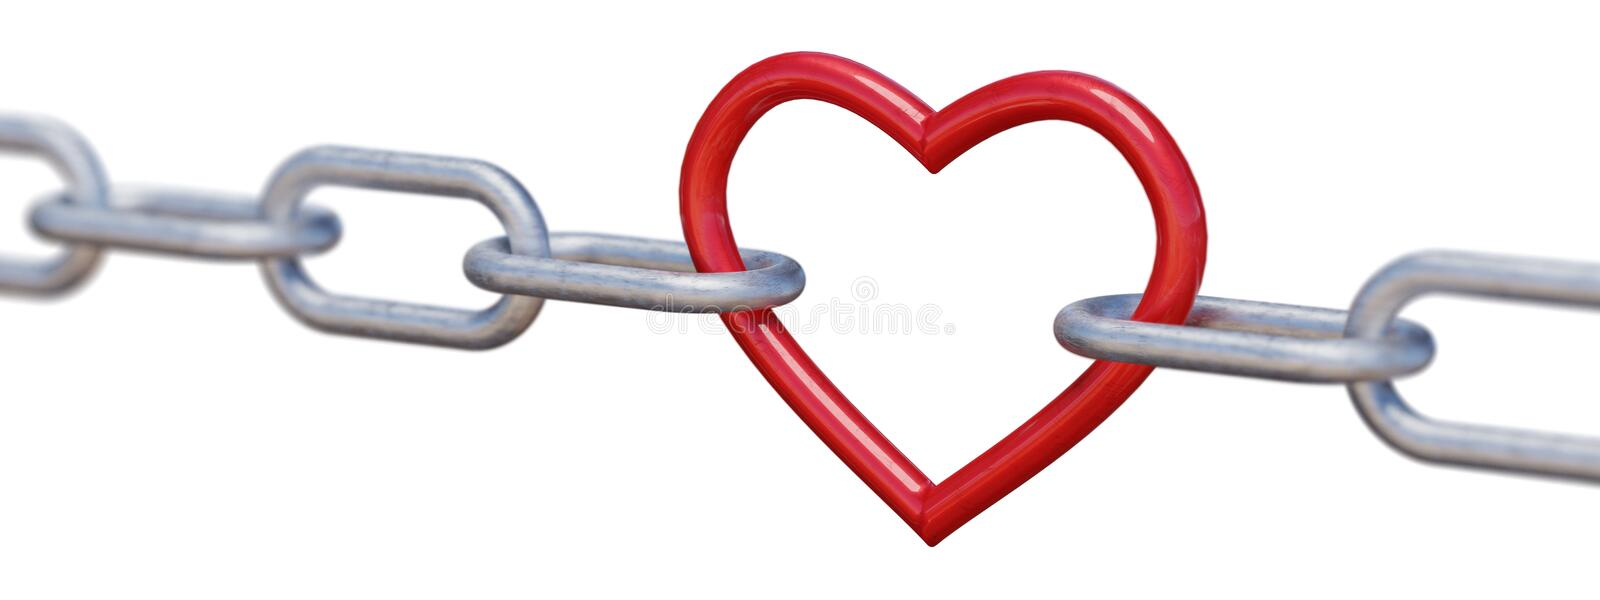 Red metalic heart in chain isolated on white background. 3D rendered illustration.  royalty free illustration